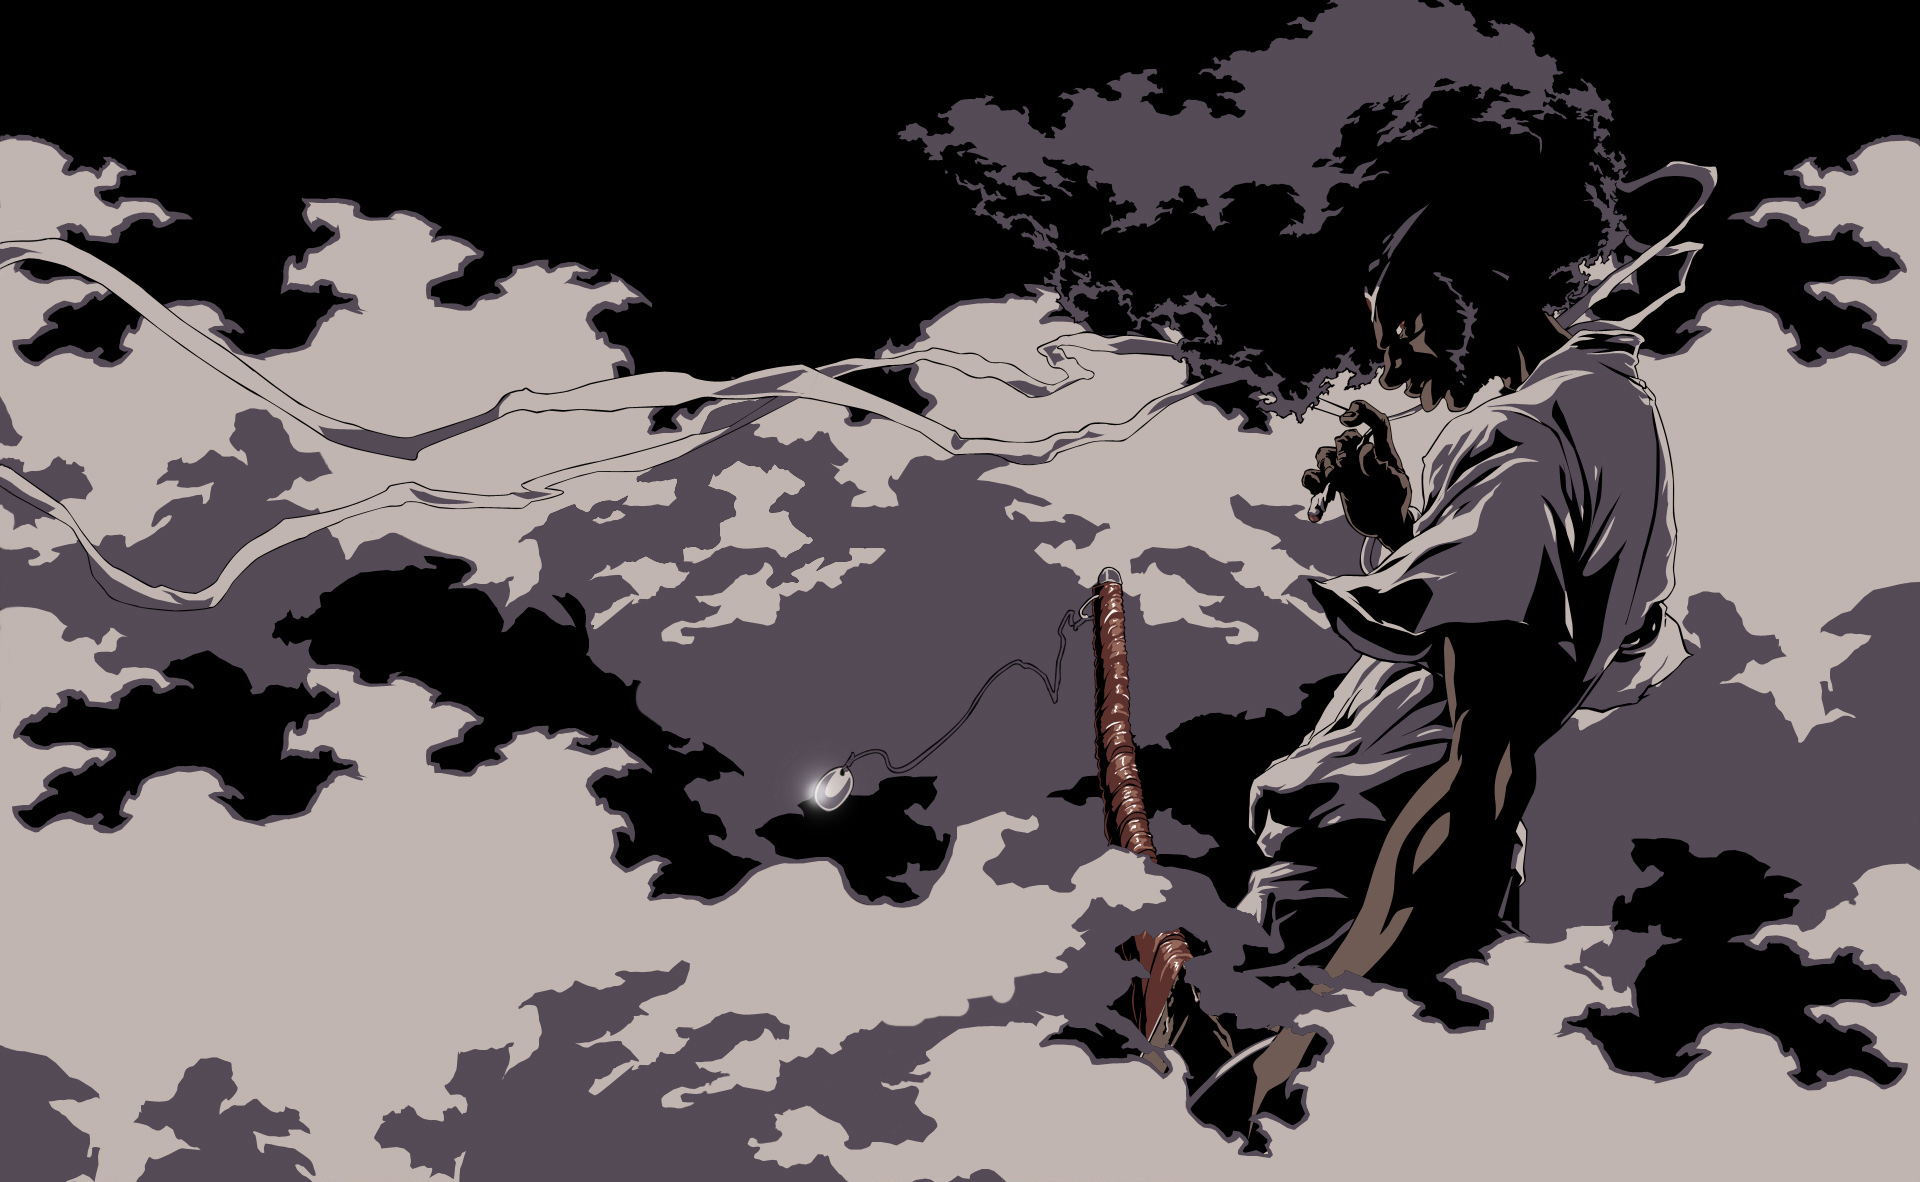 Afro Samurai Wallpaper Backgrounds 1 1920x1182